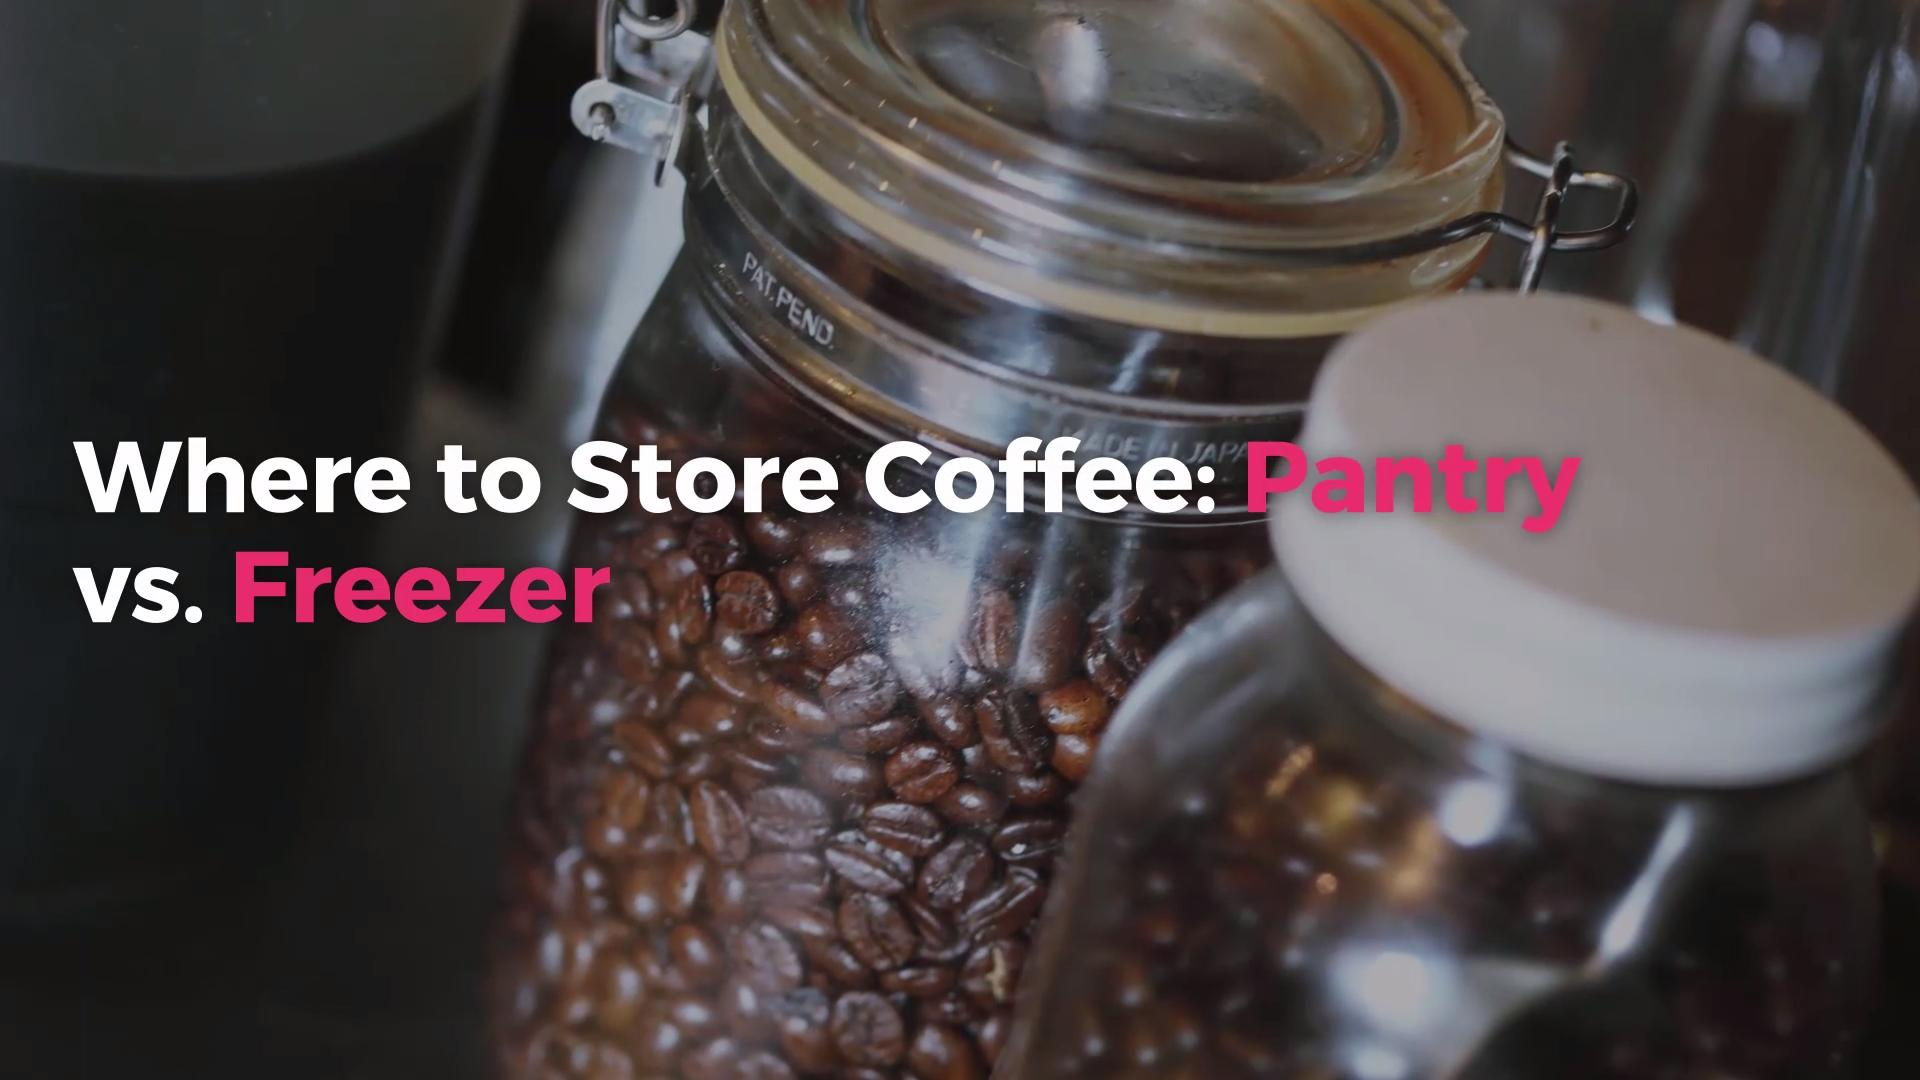 Where Should You Store Coffee? We Finally Settle the Pantry vs.